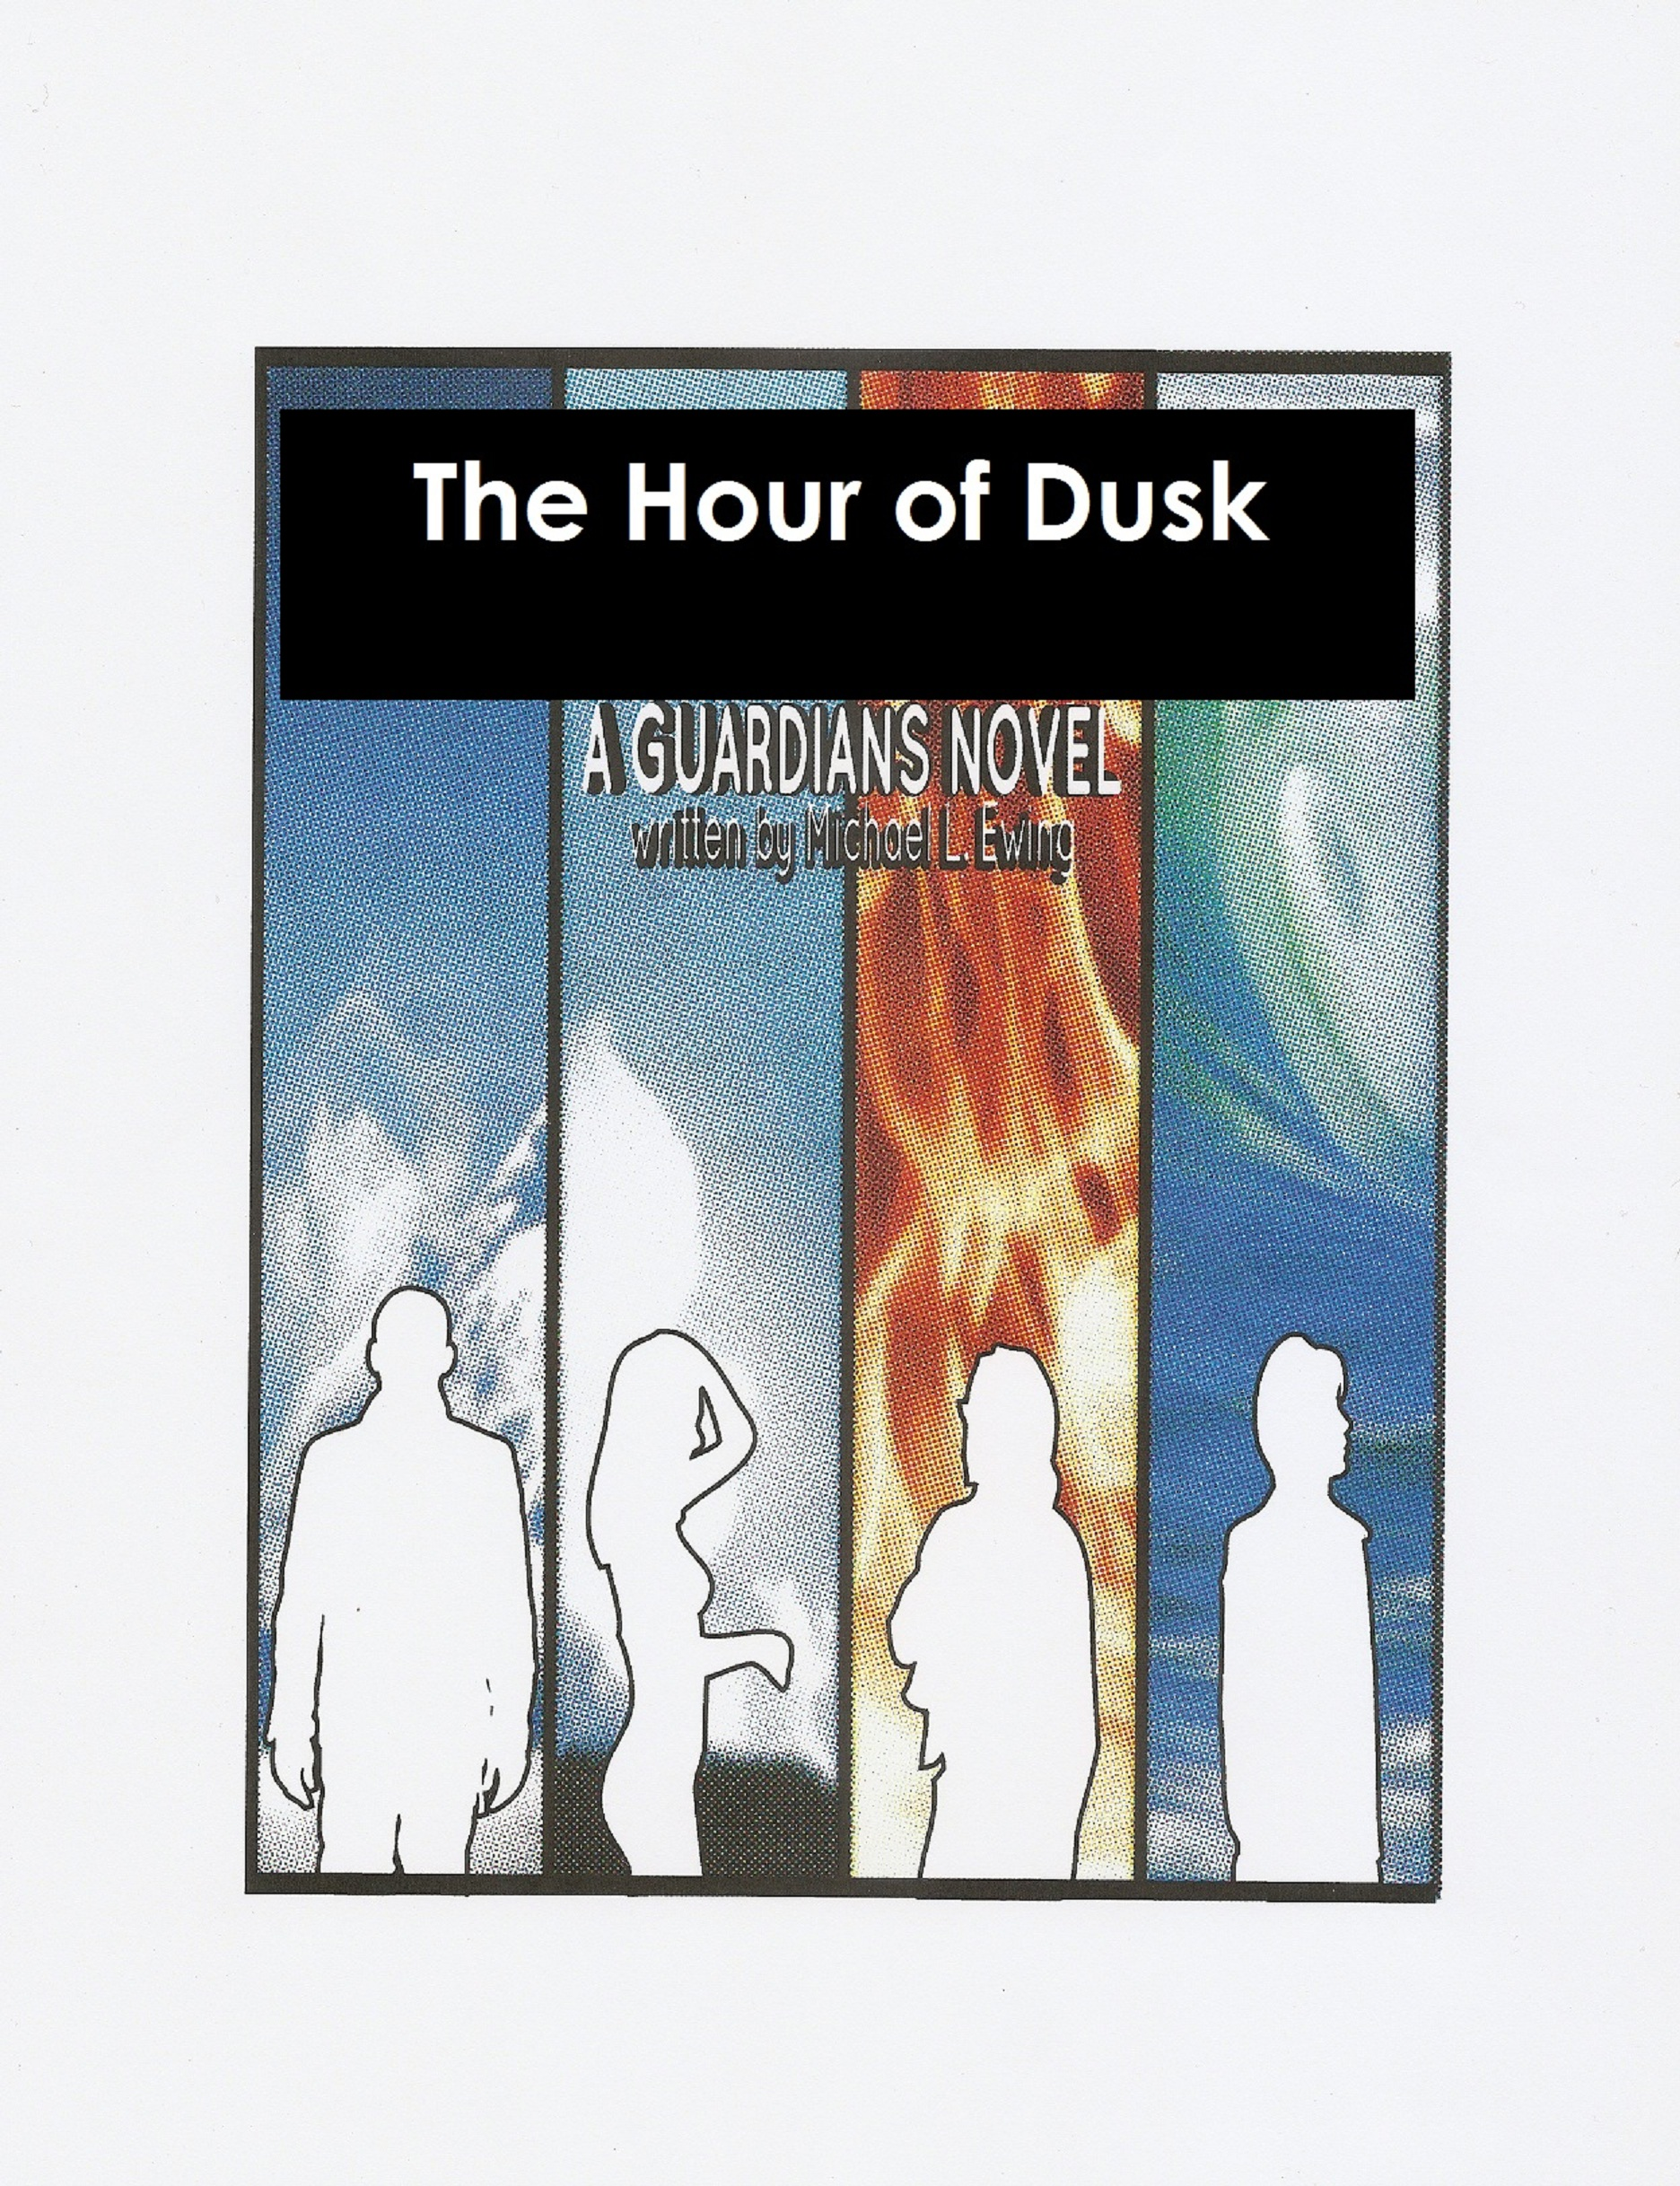 a description of the first hour of dawn and the last hour of dusk Dusk definition, the state or period of partial darkness between day and night the dark part of twilight see more.